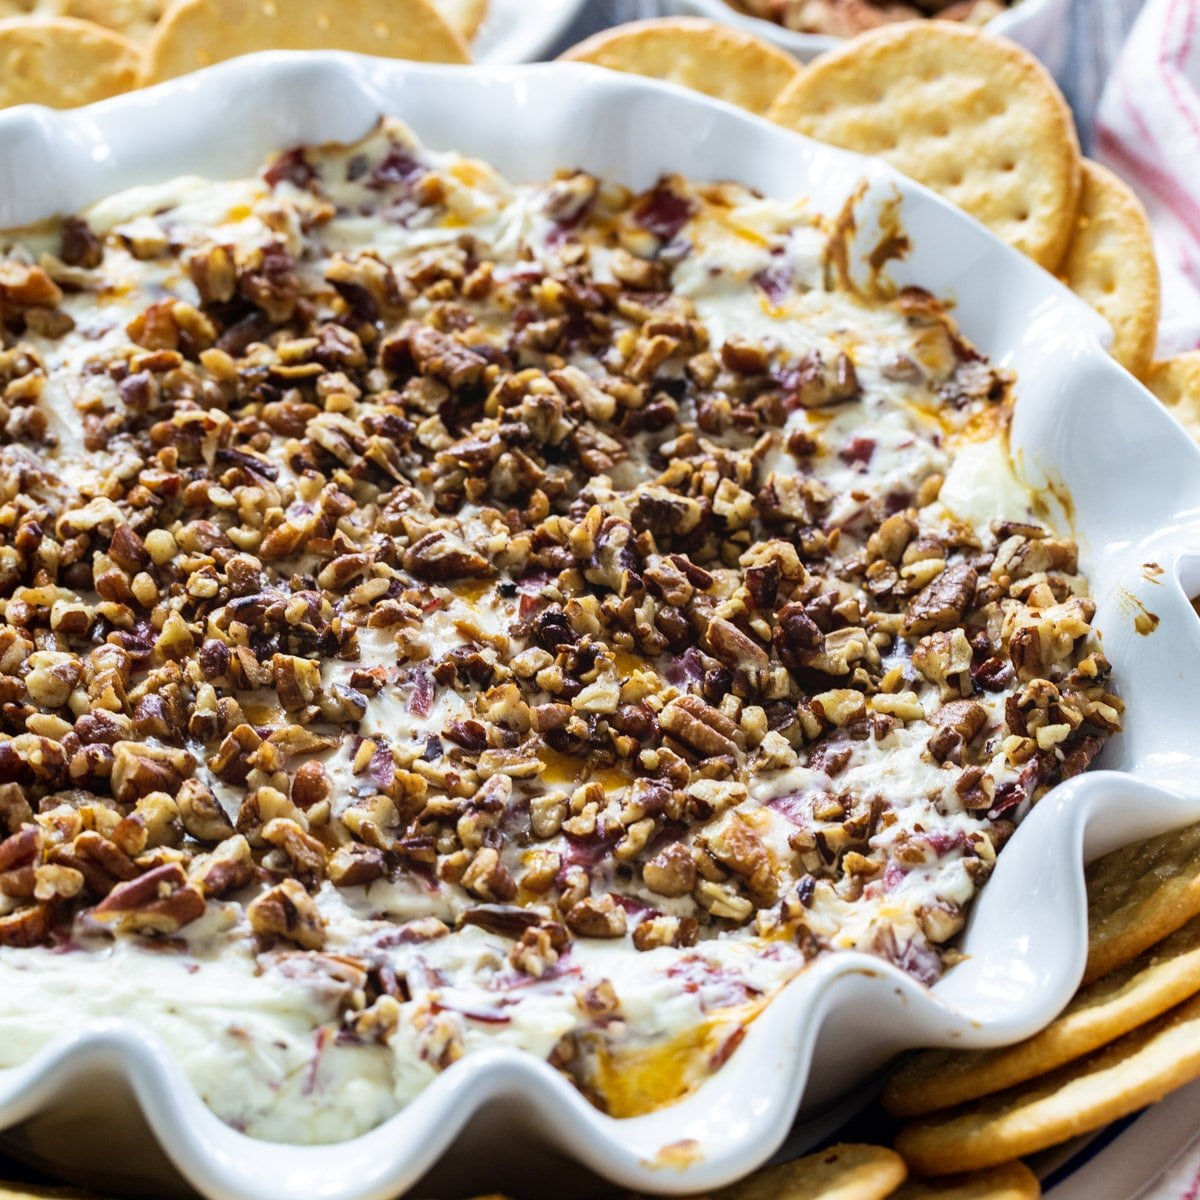 Hot Pecan Beef Dip surrounded by crackers.